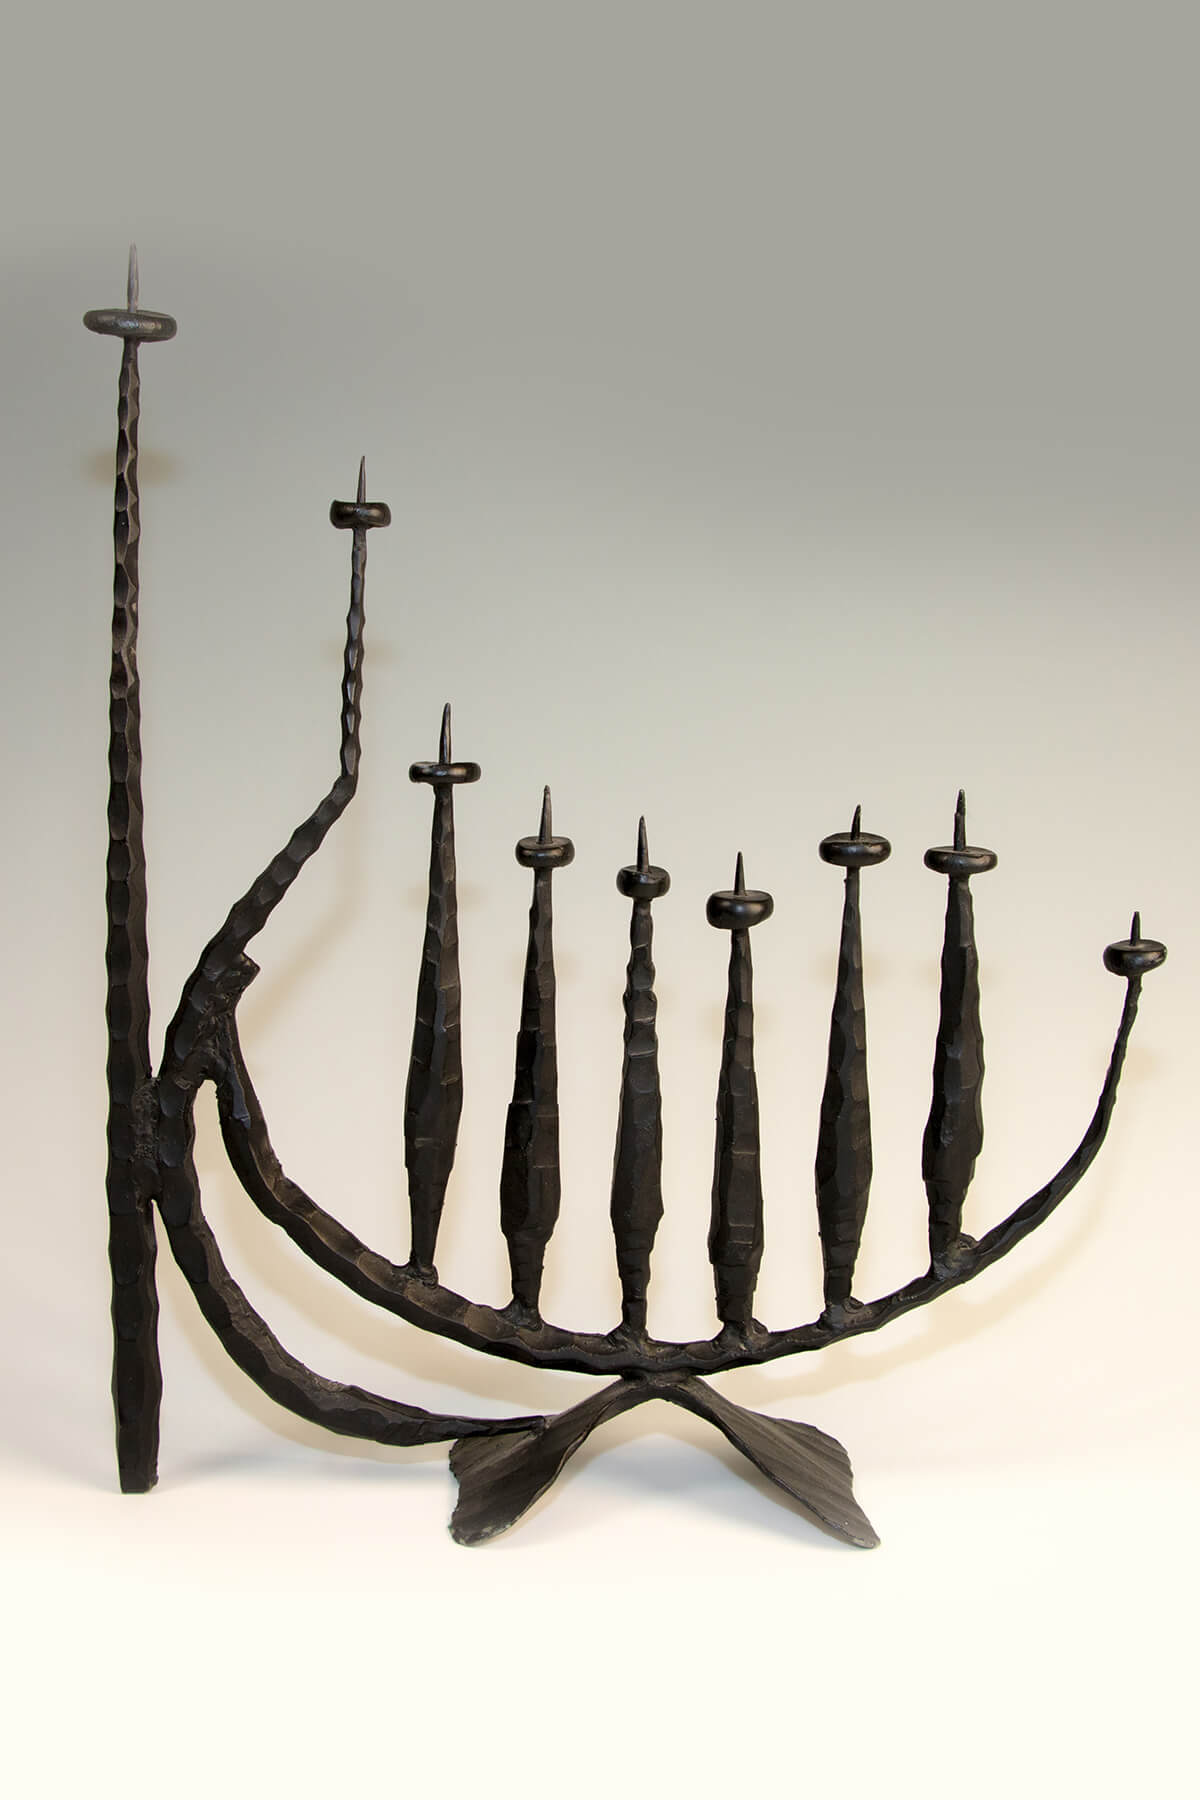 144. A Large Chanukah Menorah by David Palombo